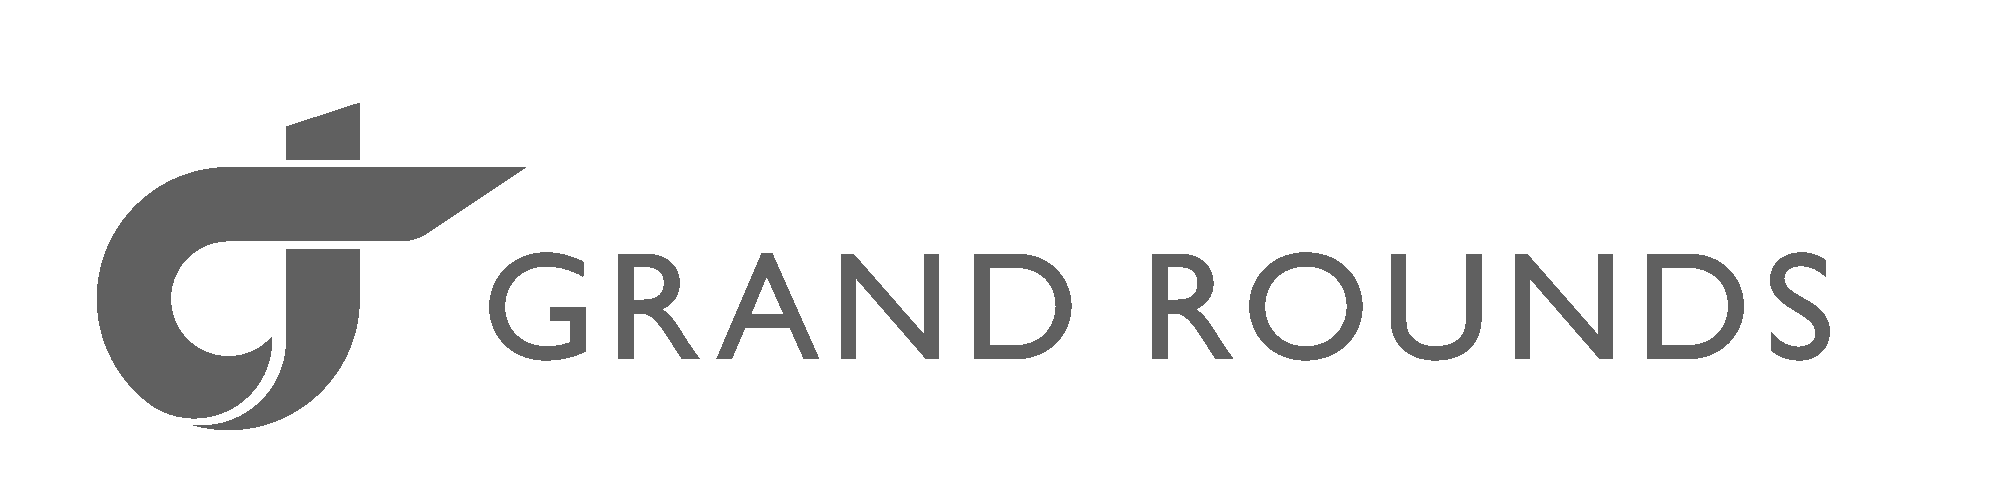 Grand-Rounds-Logo-Lockup-Horizontal-Outlined-2-Color copy.png